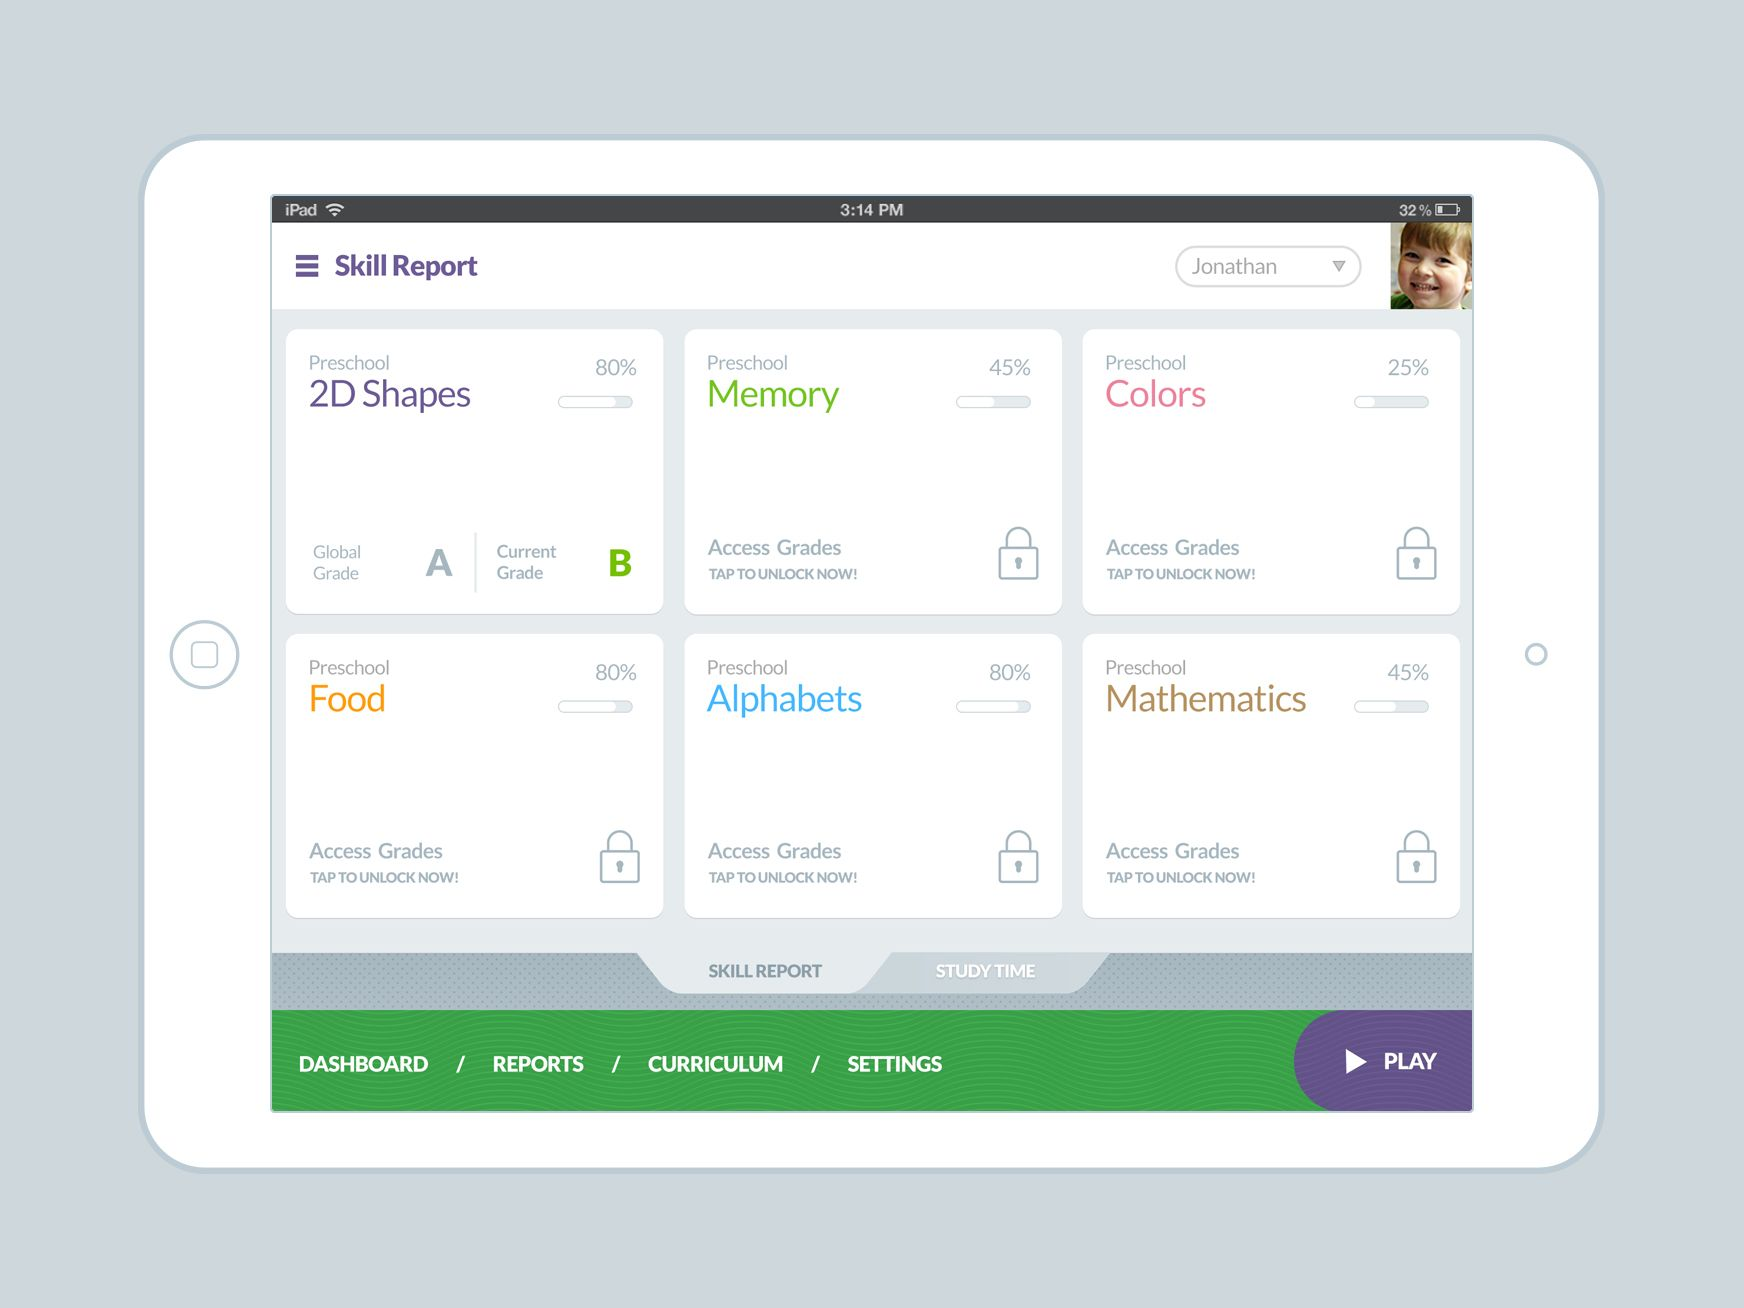 Report Dashboard reports, Mathematics, Preschool